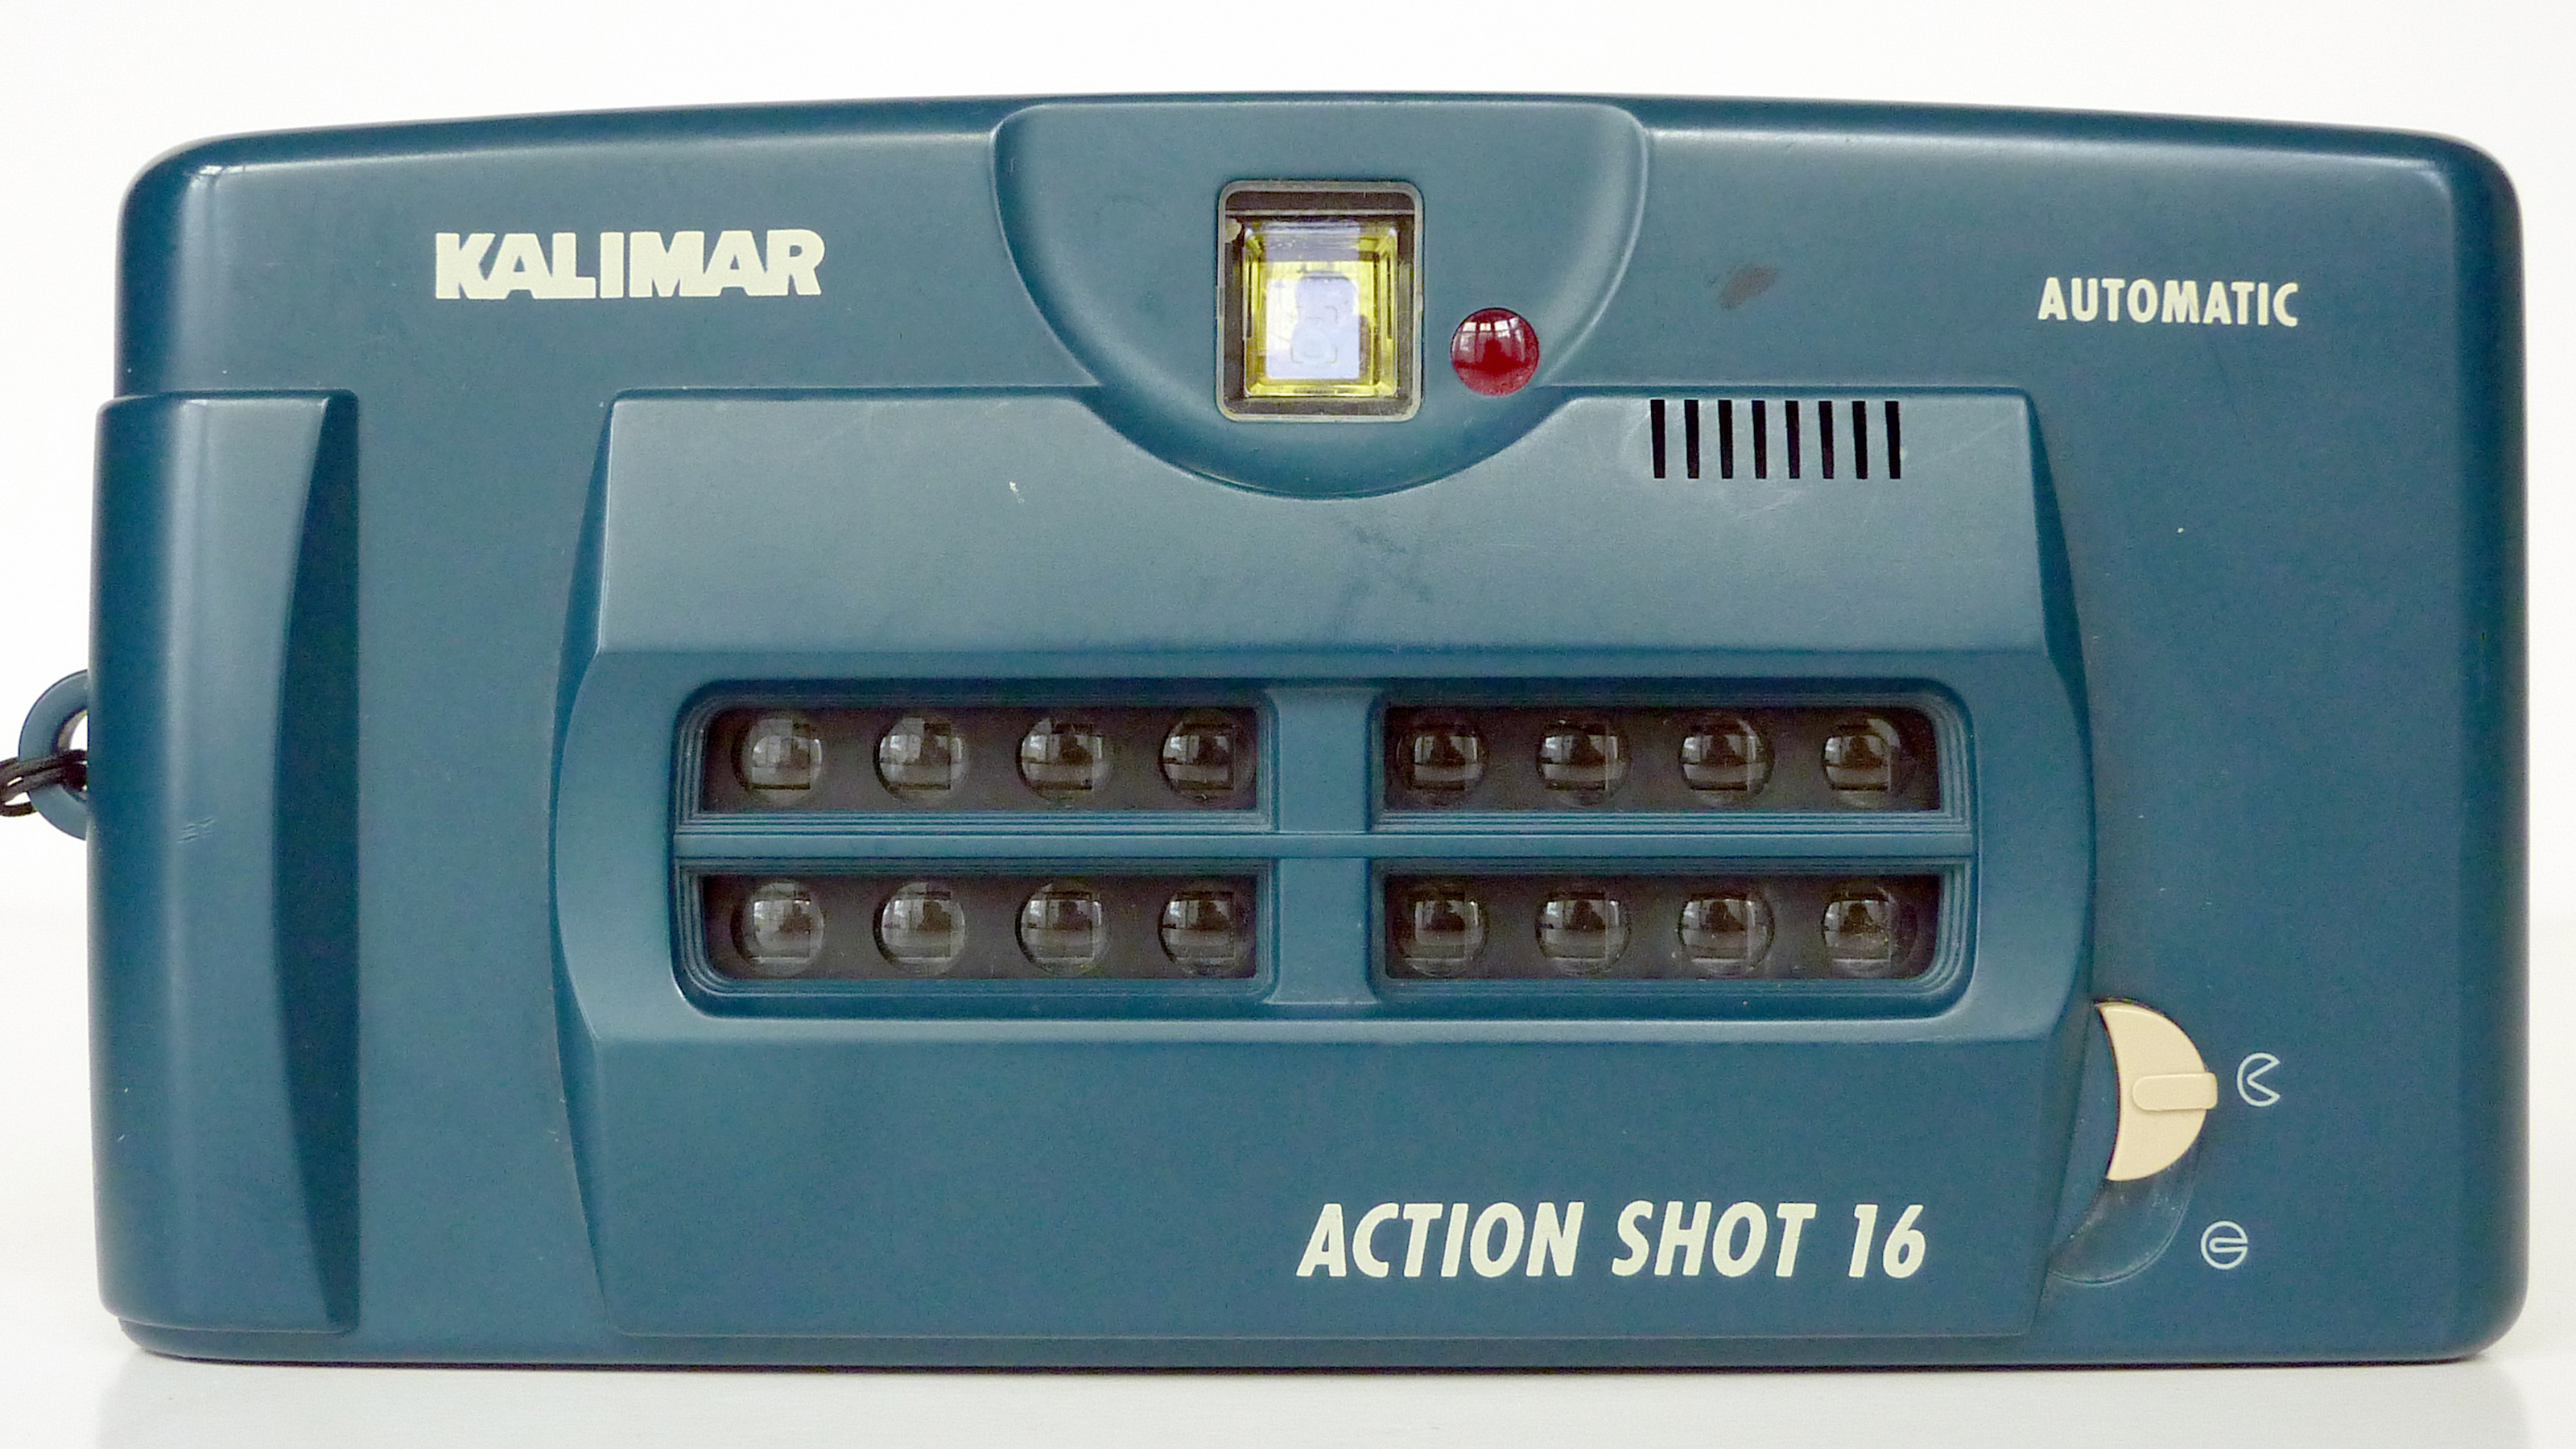 The front of the Kalimir Actionshot 16 camera